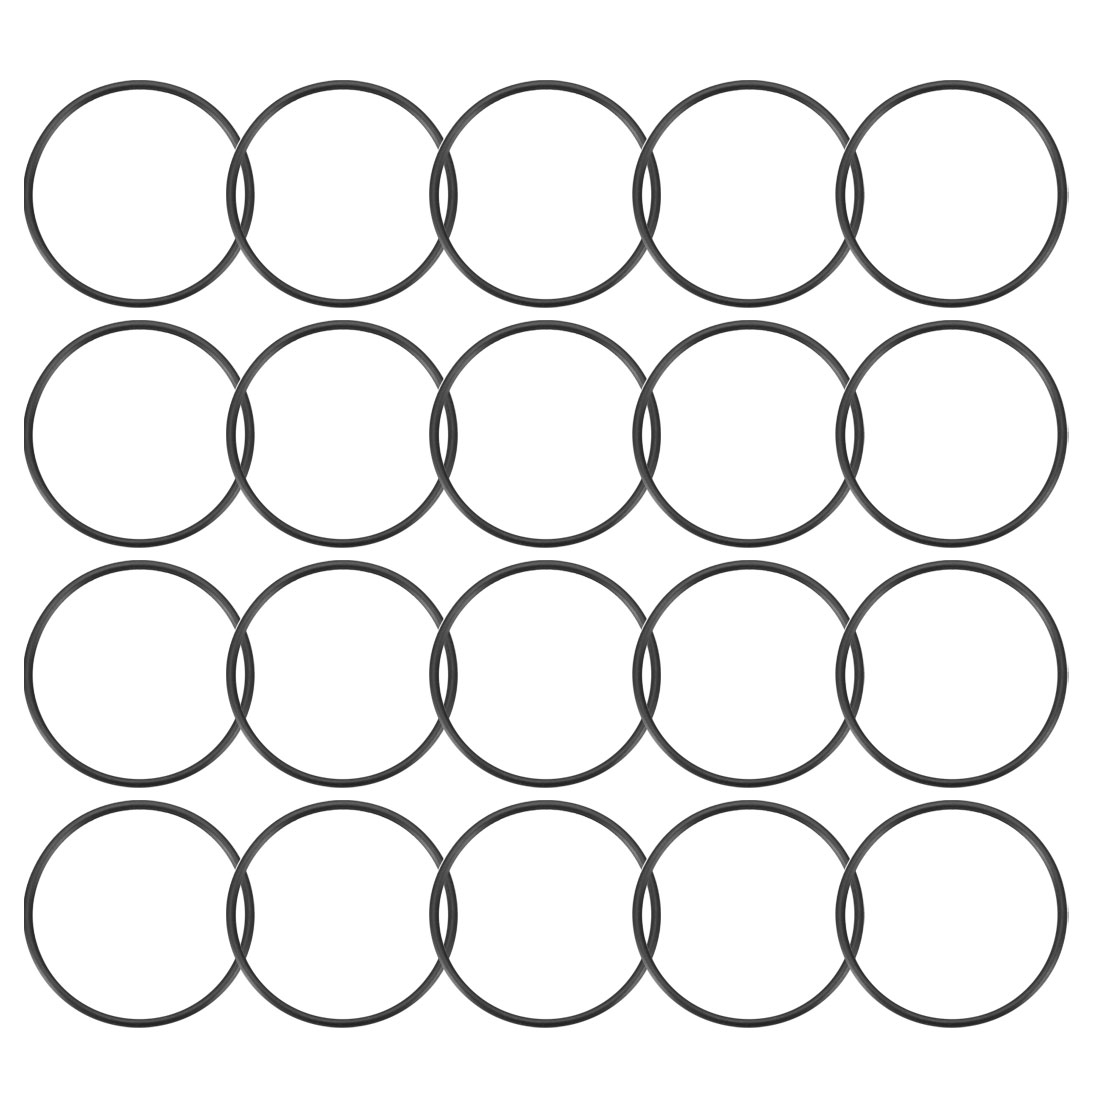 20 Pcs 34mm x 1.5mm Rubber O-rings NBR Heat Resistant Sealing Ring Grommets